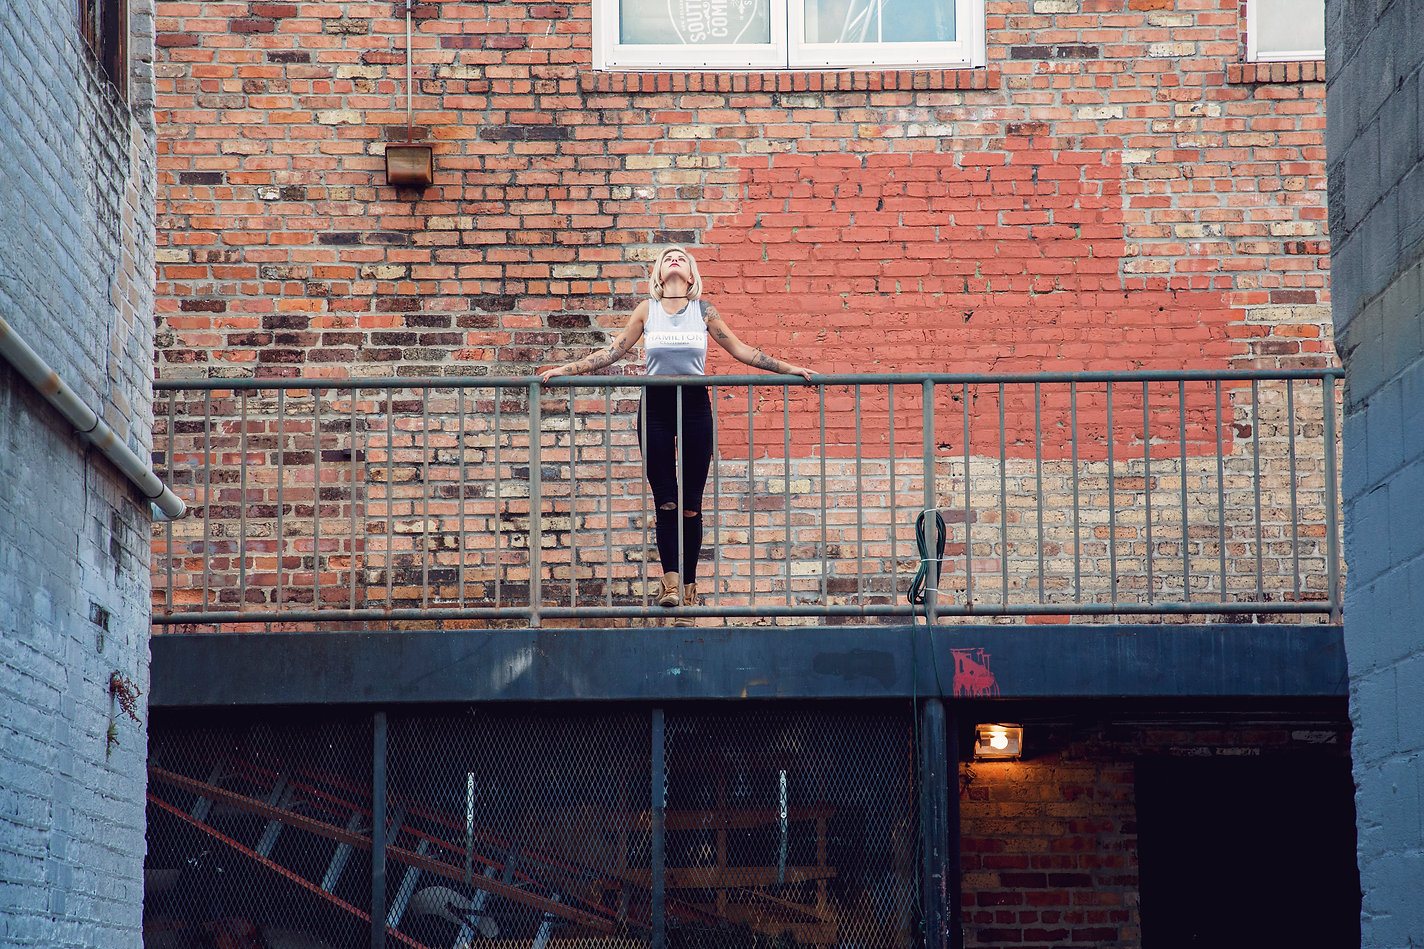 Women's spring collection main header image of girl on stairs